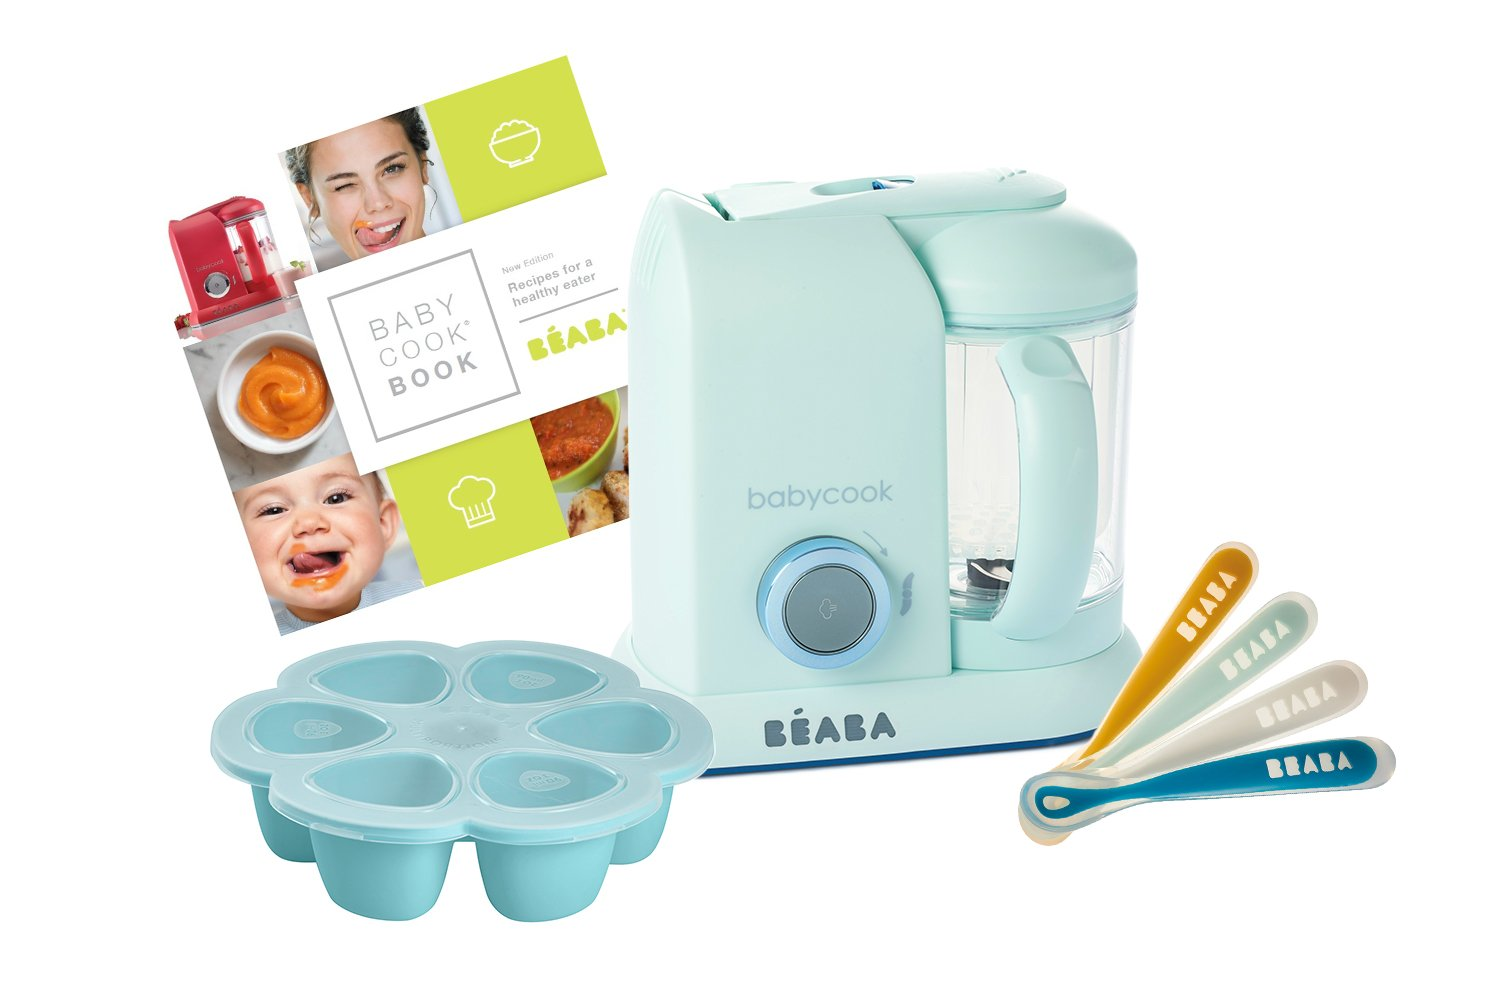 BEABA 1st Stage Feeding Gift Set, includes Babycook, silicone spoons, silicone food storage tray, cookbook, Blueberry